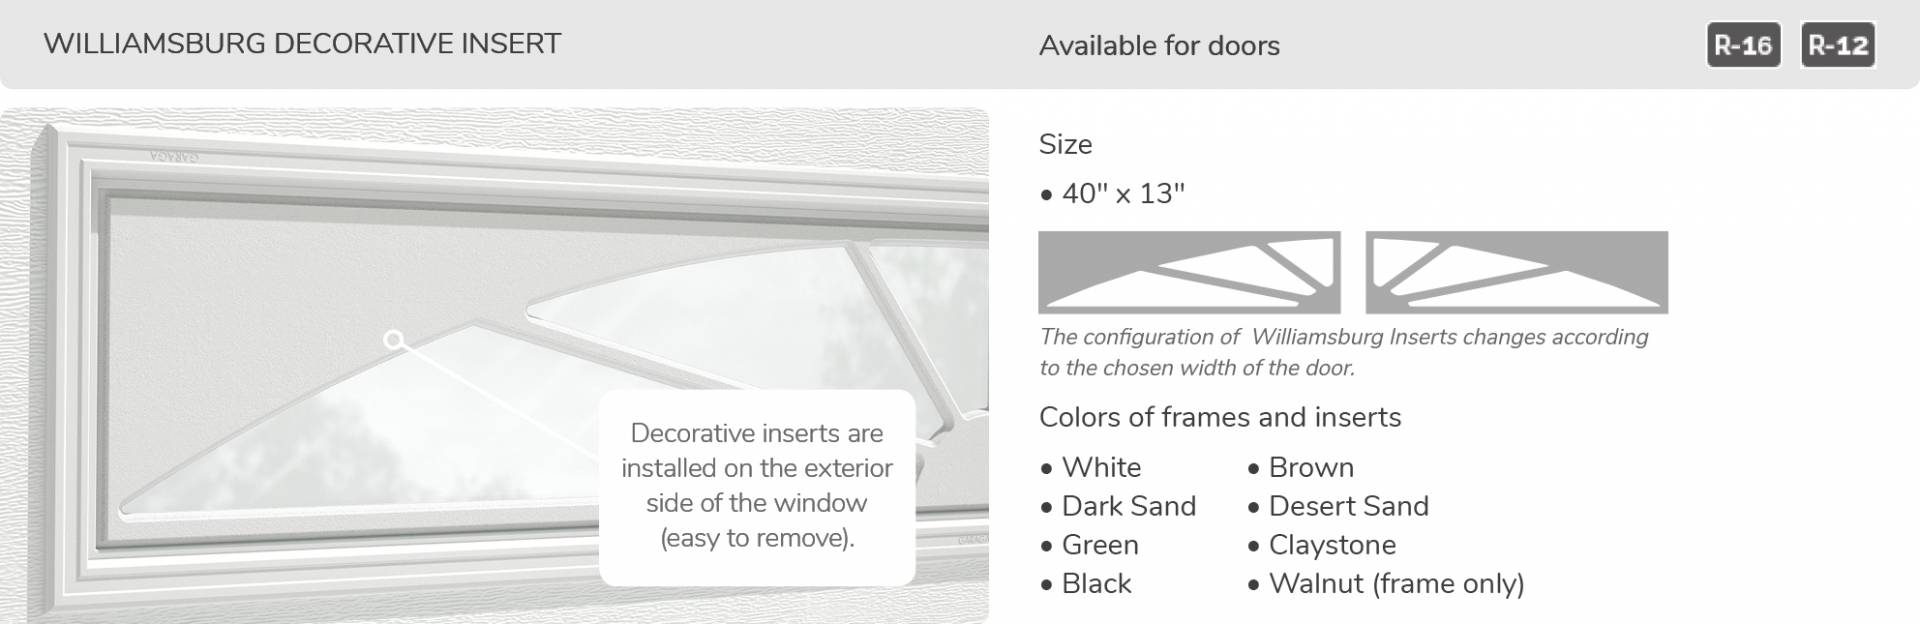 Williamsburg Decorative Insert, 40' x 13', available for doors R-16 and R-12